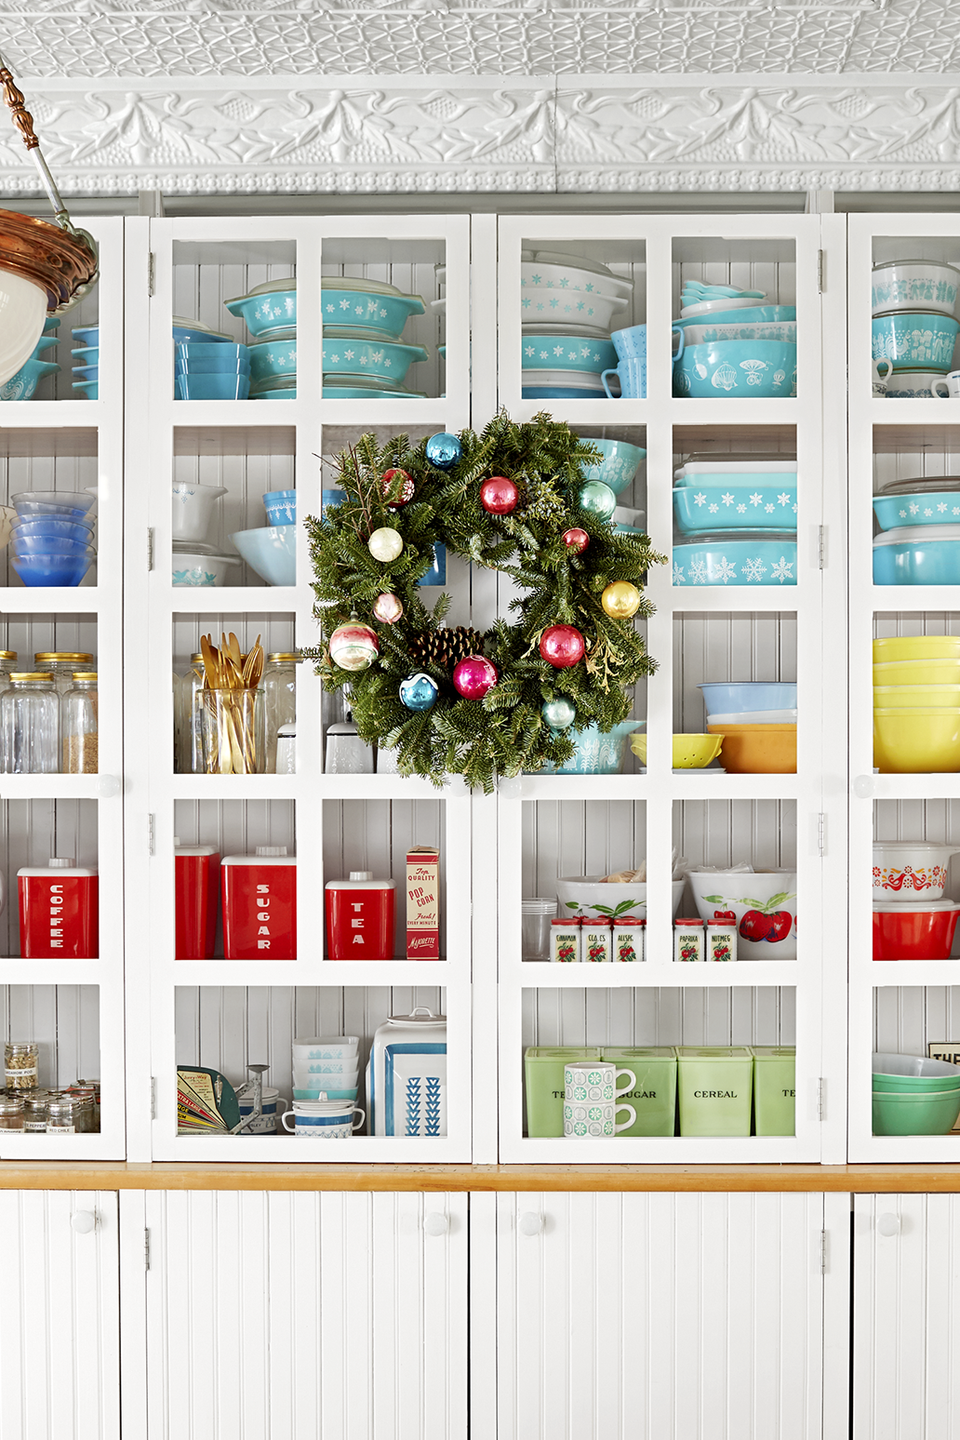 """<p>Everyone knows wreaths look great on windows and doors, but why not add them to your kitchen and pantry cabinets too? Opt for brightly hued ornaments to add punch, or neutral ones to add elegance to your wreath, and then display it on storage pieces in sight like <a href=""""https://www.countryliving.com/home-design/house-tours/g4929/farmhouse-packed-christmas-decorating-ideas/"""" rel=""""nofollow noopener"""" target=""""_blank"""" data-ylk=""""slk:these Michigan farmhouse owners did"""" class=""""link rapid-noclick-resp"""">these Michigan farmhouse owners did</a>.</p><p><a class=""""link rapid-noclick-resp"""" href=""""https://www.amazon.com/s/ref=nb_sb_noss_2?url=search-alias%3Dgarden&field-keywords=christmas+wreath&rh=n%3A1055398%2Ck%3Achristmas+wreath&tag=syn-yahoo-20&ascsubtag=%5Bartid%7C10050.g.1247%5Bsrc%7Cyahoo-us"""" rel=""""nofollow noopener"""" target=""""_blank"""" data-ylk=""""slk:SHOP CHRISTMAS WREATHS"""">SHOP CHRISTMAS WREATHS</a> </p>"""